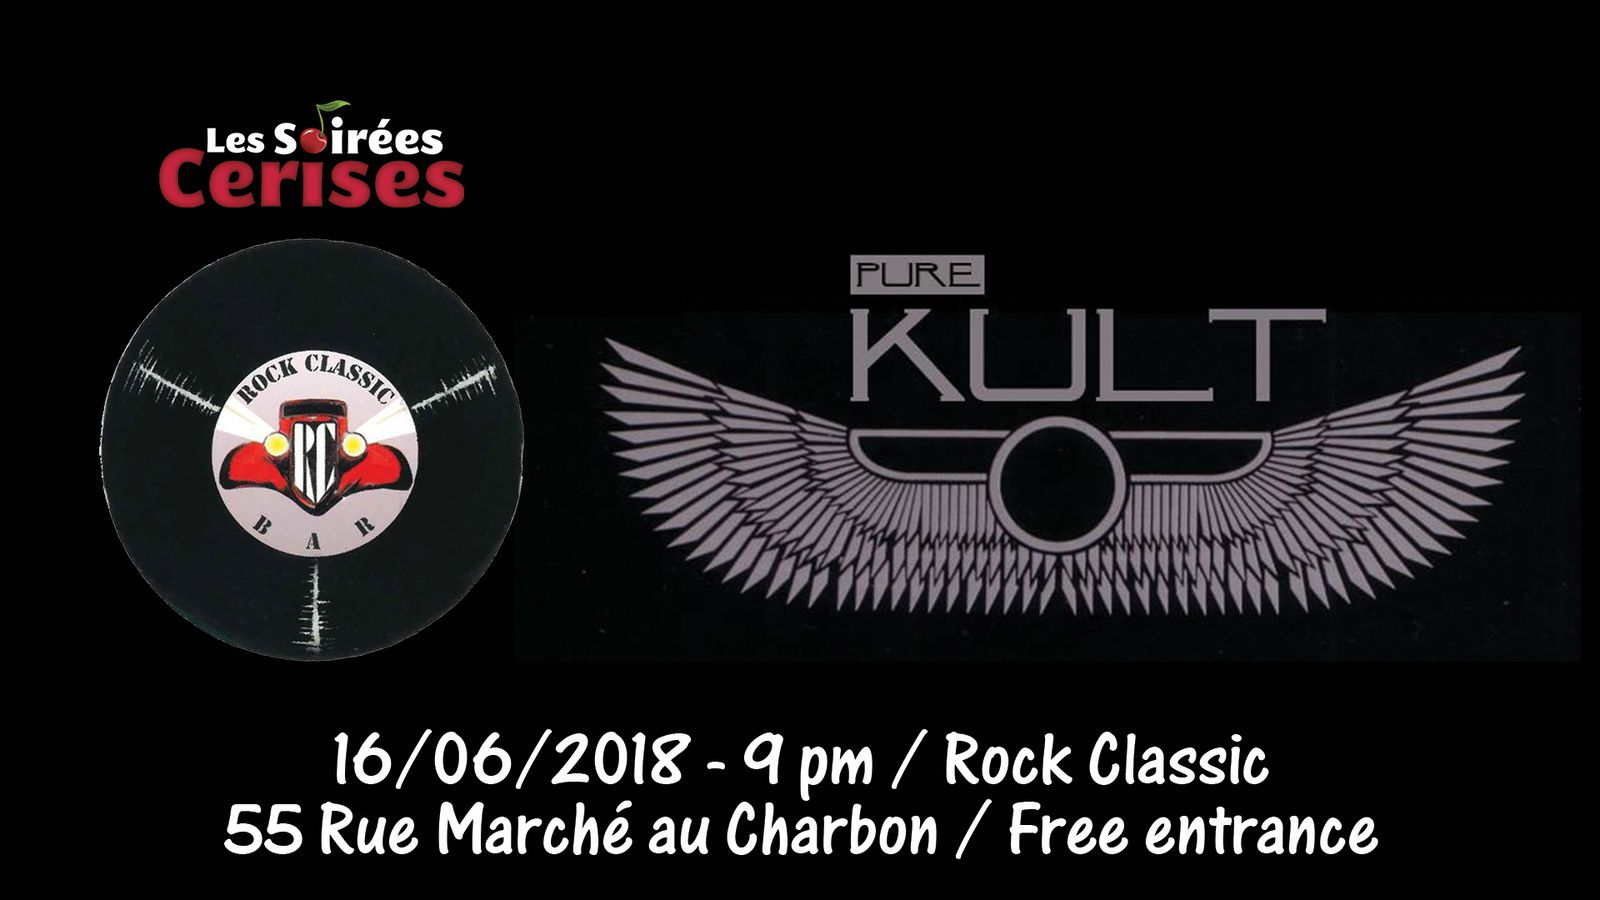 ▶ Pure Kult (THE CULT tribute band) @ Rock Classic - 16/06/2018 - 21h00 - Entrée gratuite